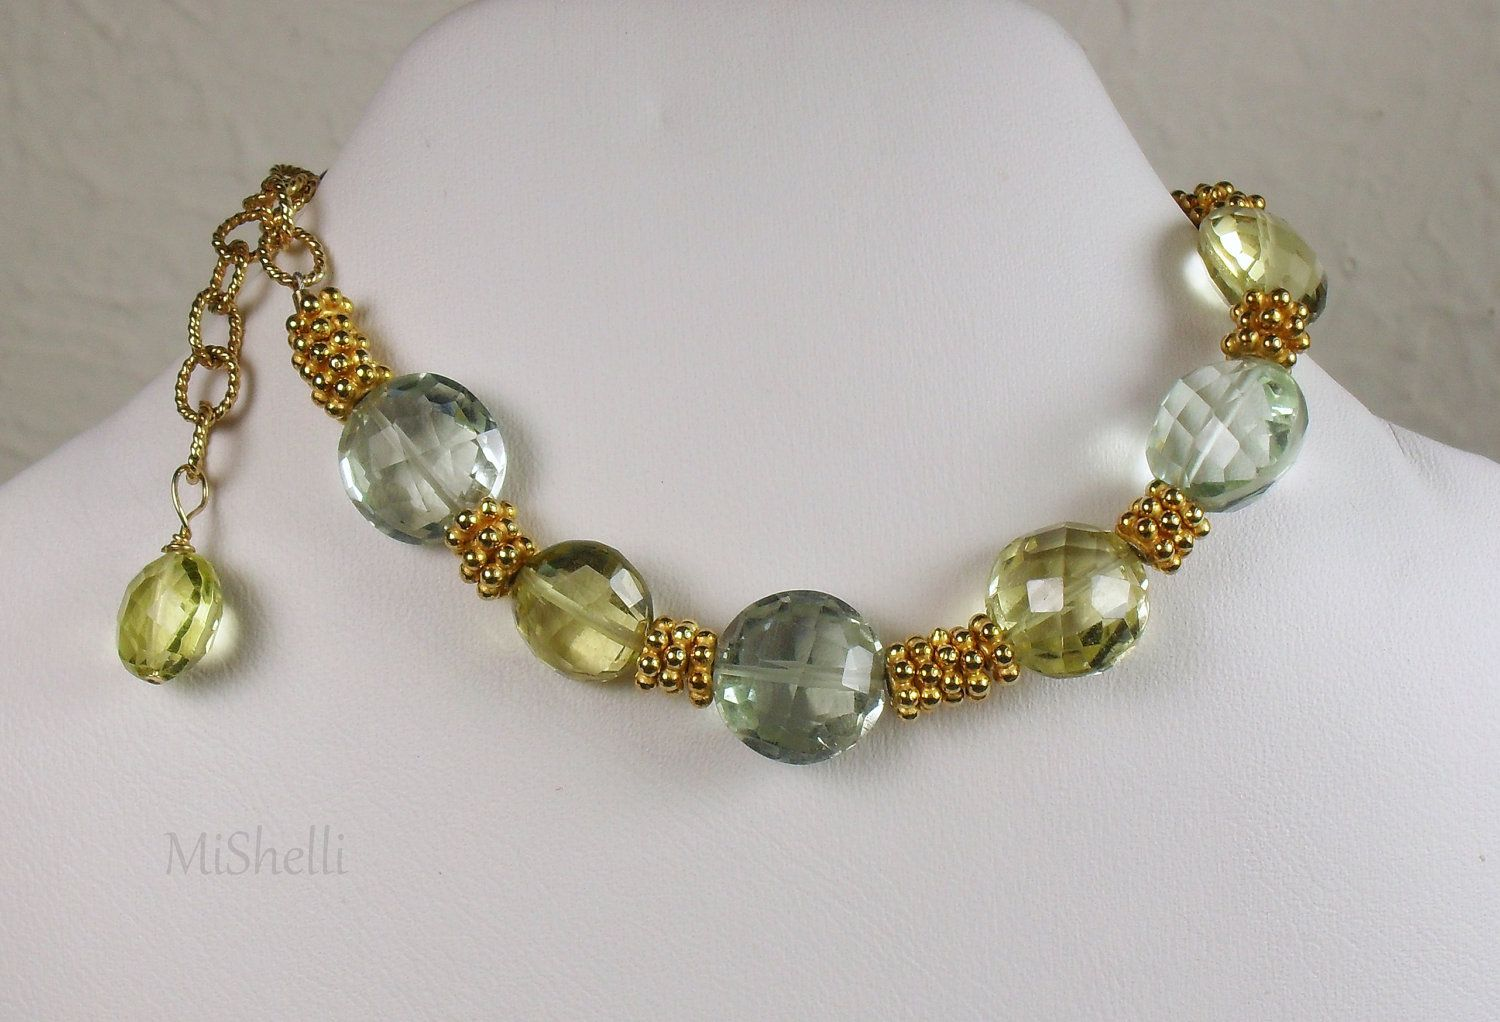 Checkout this amazing deal Green and Lemon Quartz Vermeil Bracelet,$89